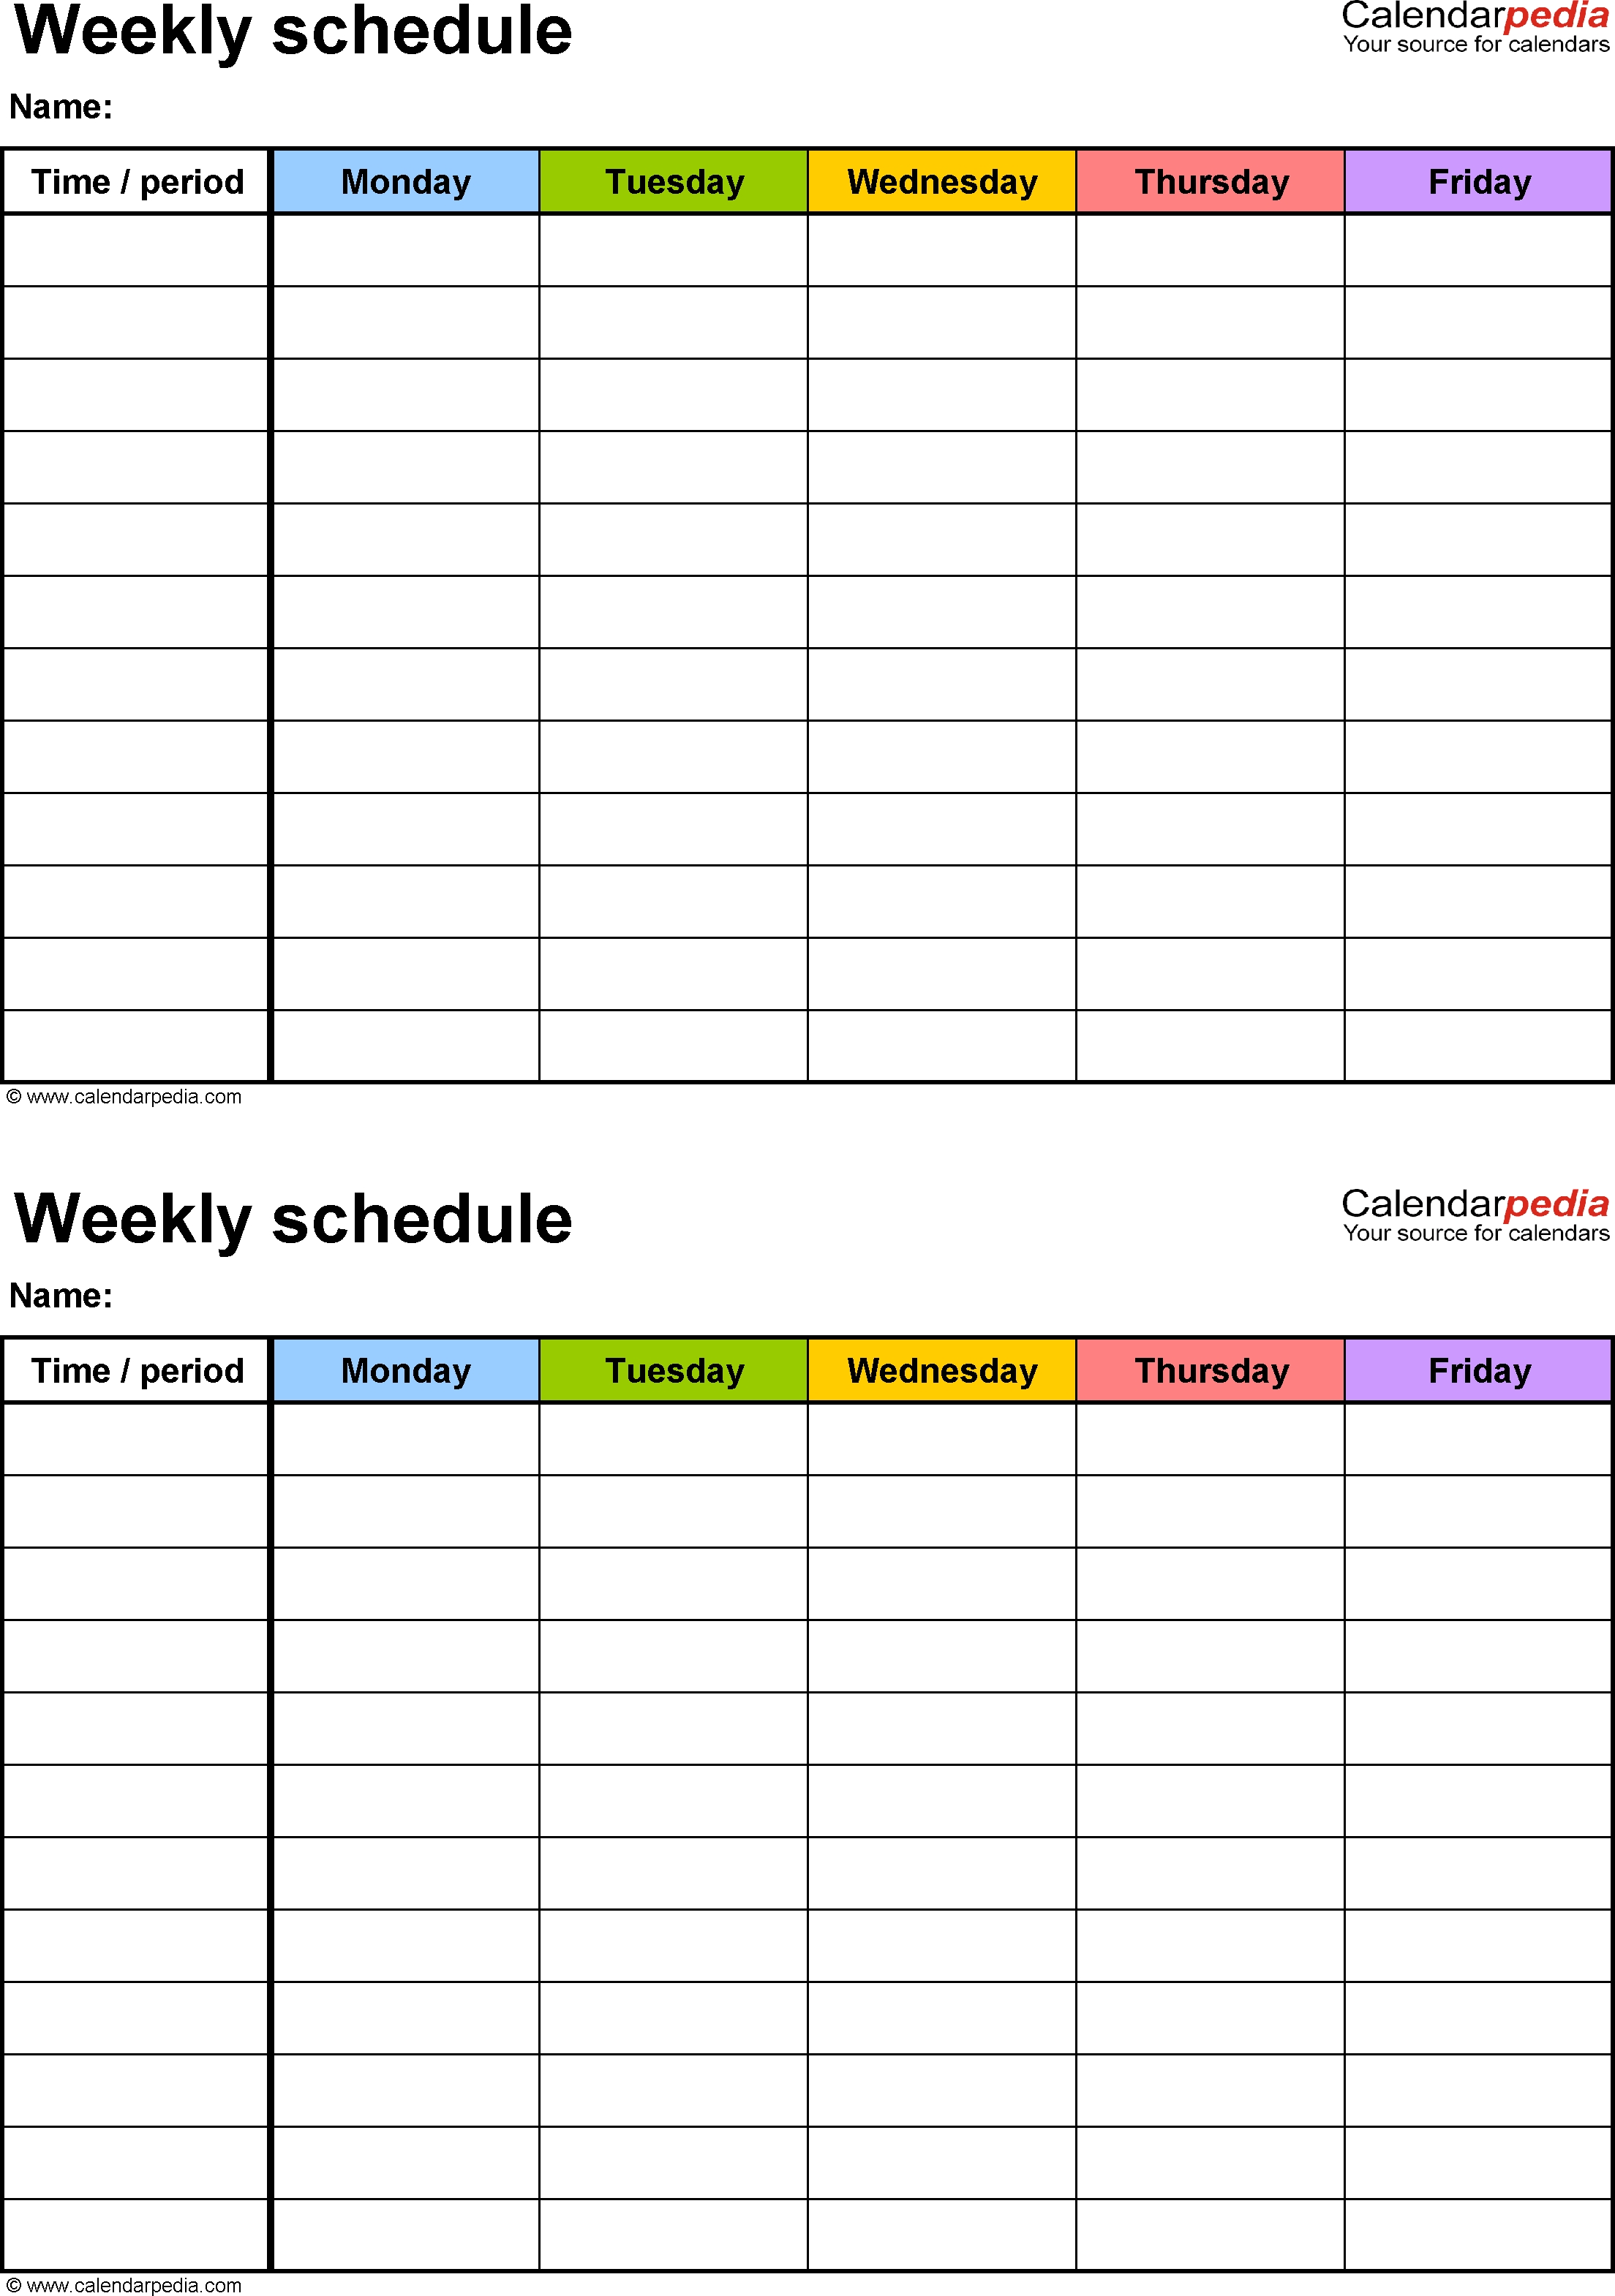 Free Weekly Schedule Templates For Excel - 18 Templates for 2 Week Schedule Template Mon- Sunday